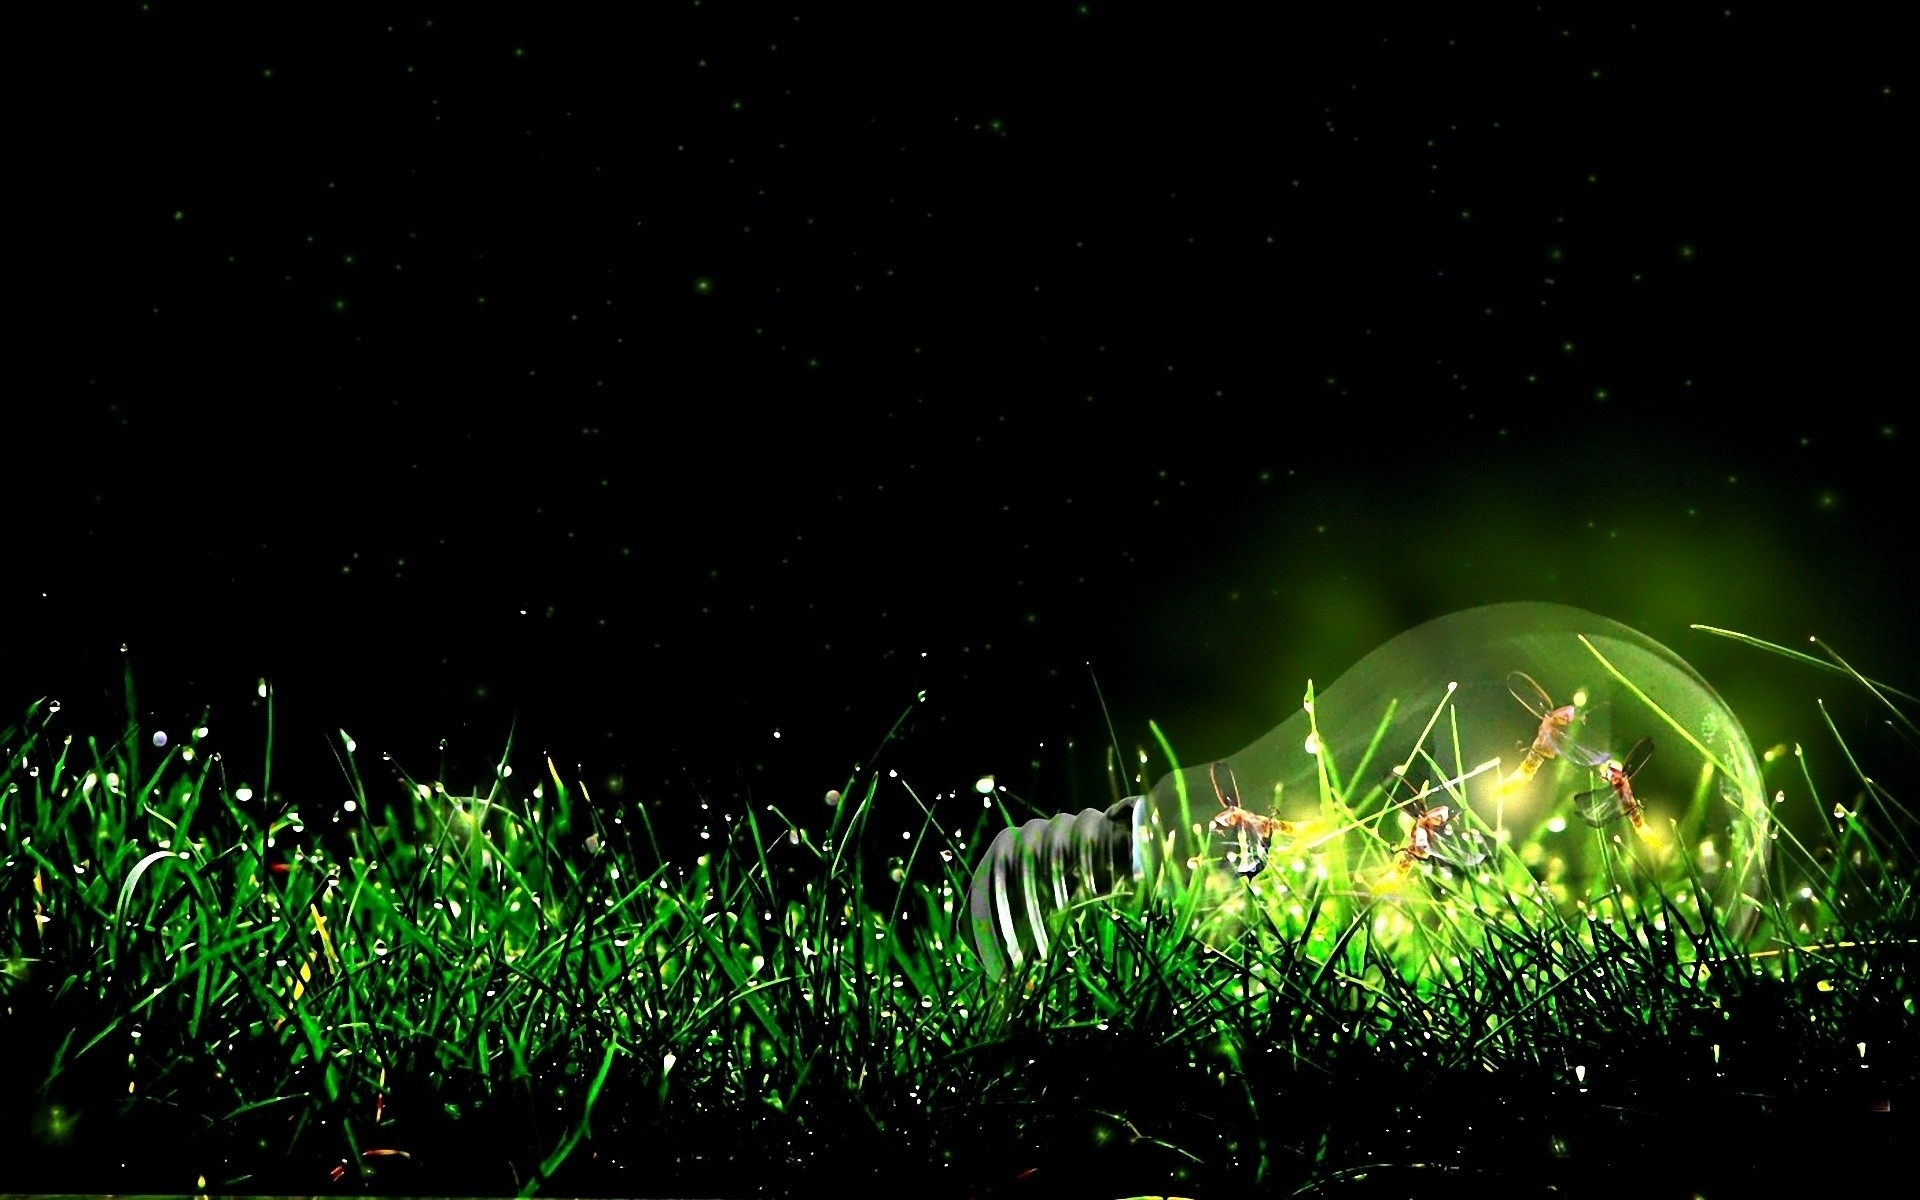 insects bulb light grass wallpapers insects bulb light